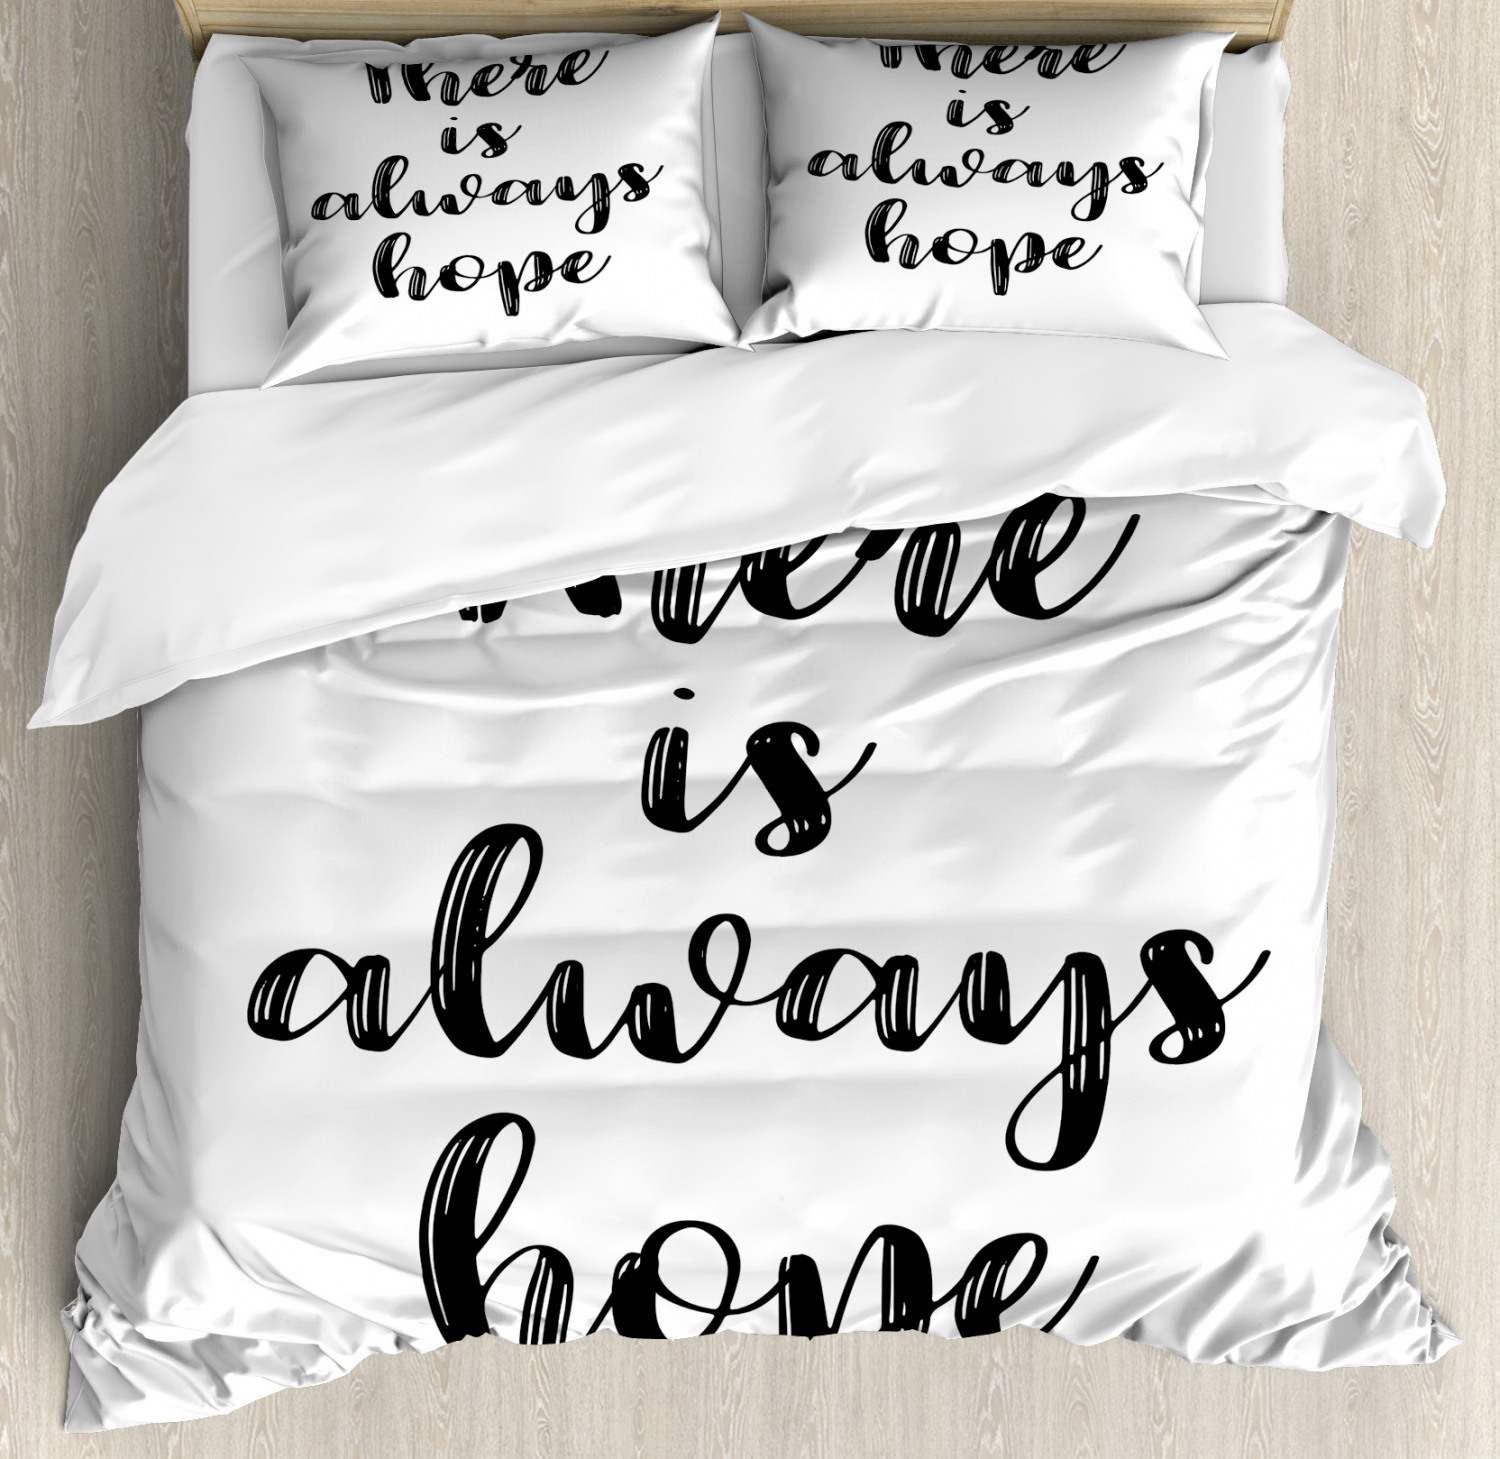 Hope King Size Duvet Cover Set There Is Always Hope Hand Lettering Style Illustration Inspirational Vintage Decorative 3 Piece Bedding Set With 2 Pillow Shams Black And White By Ambesonne Walmart Com